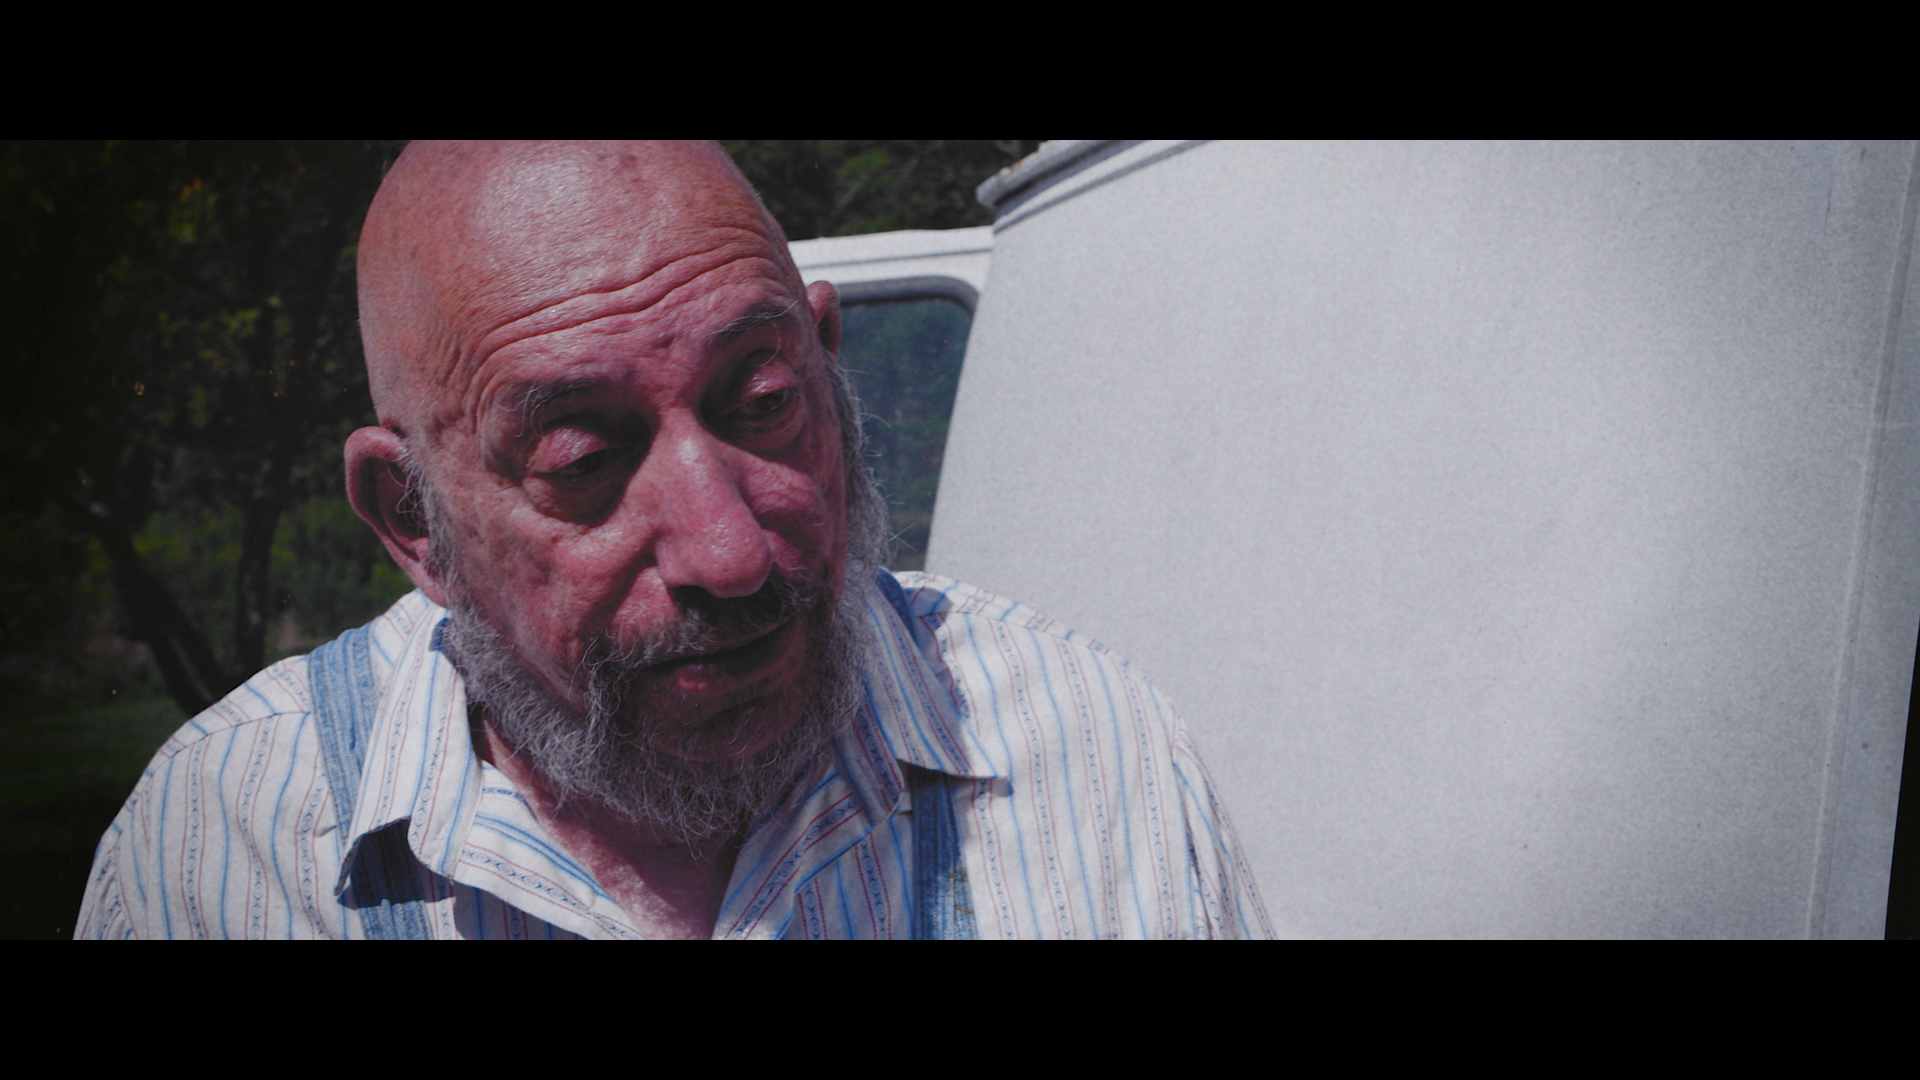 """Grindhouse action film starring horror icon Sid Haig"" - -Twitter"